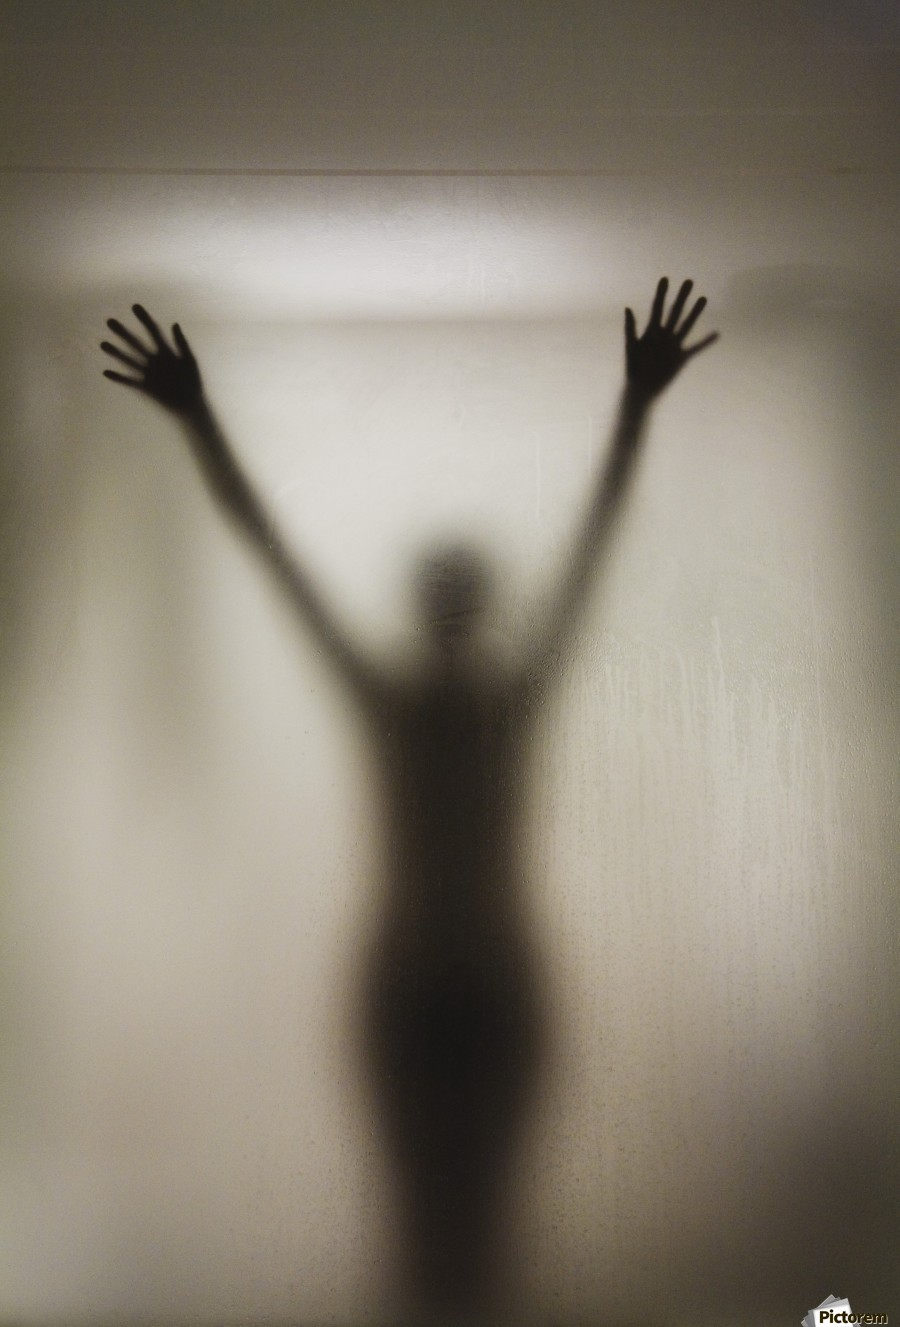 Silhouette Of A Nude Woman Behind The Glass Door Shower Stall